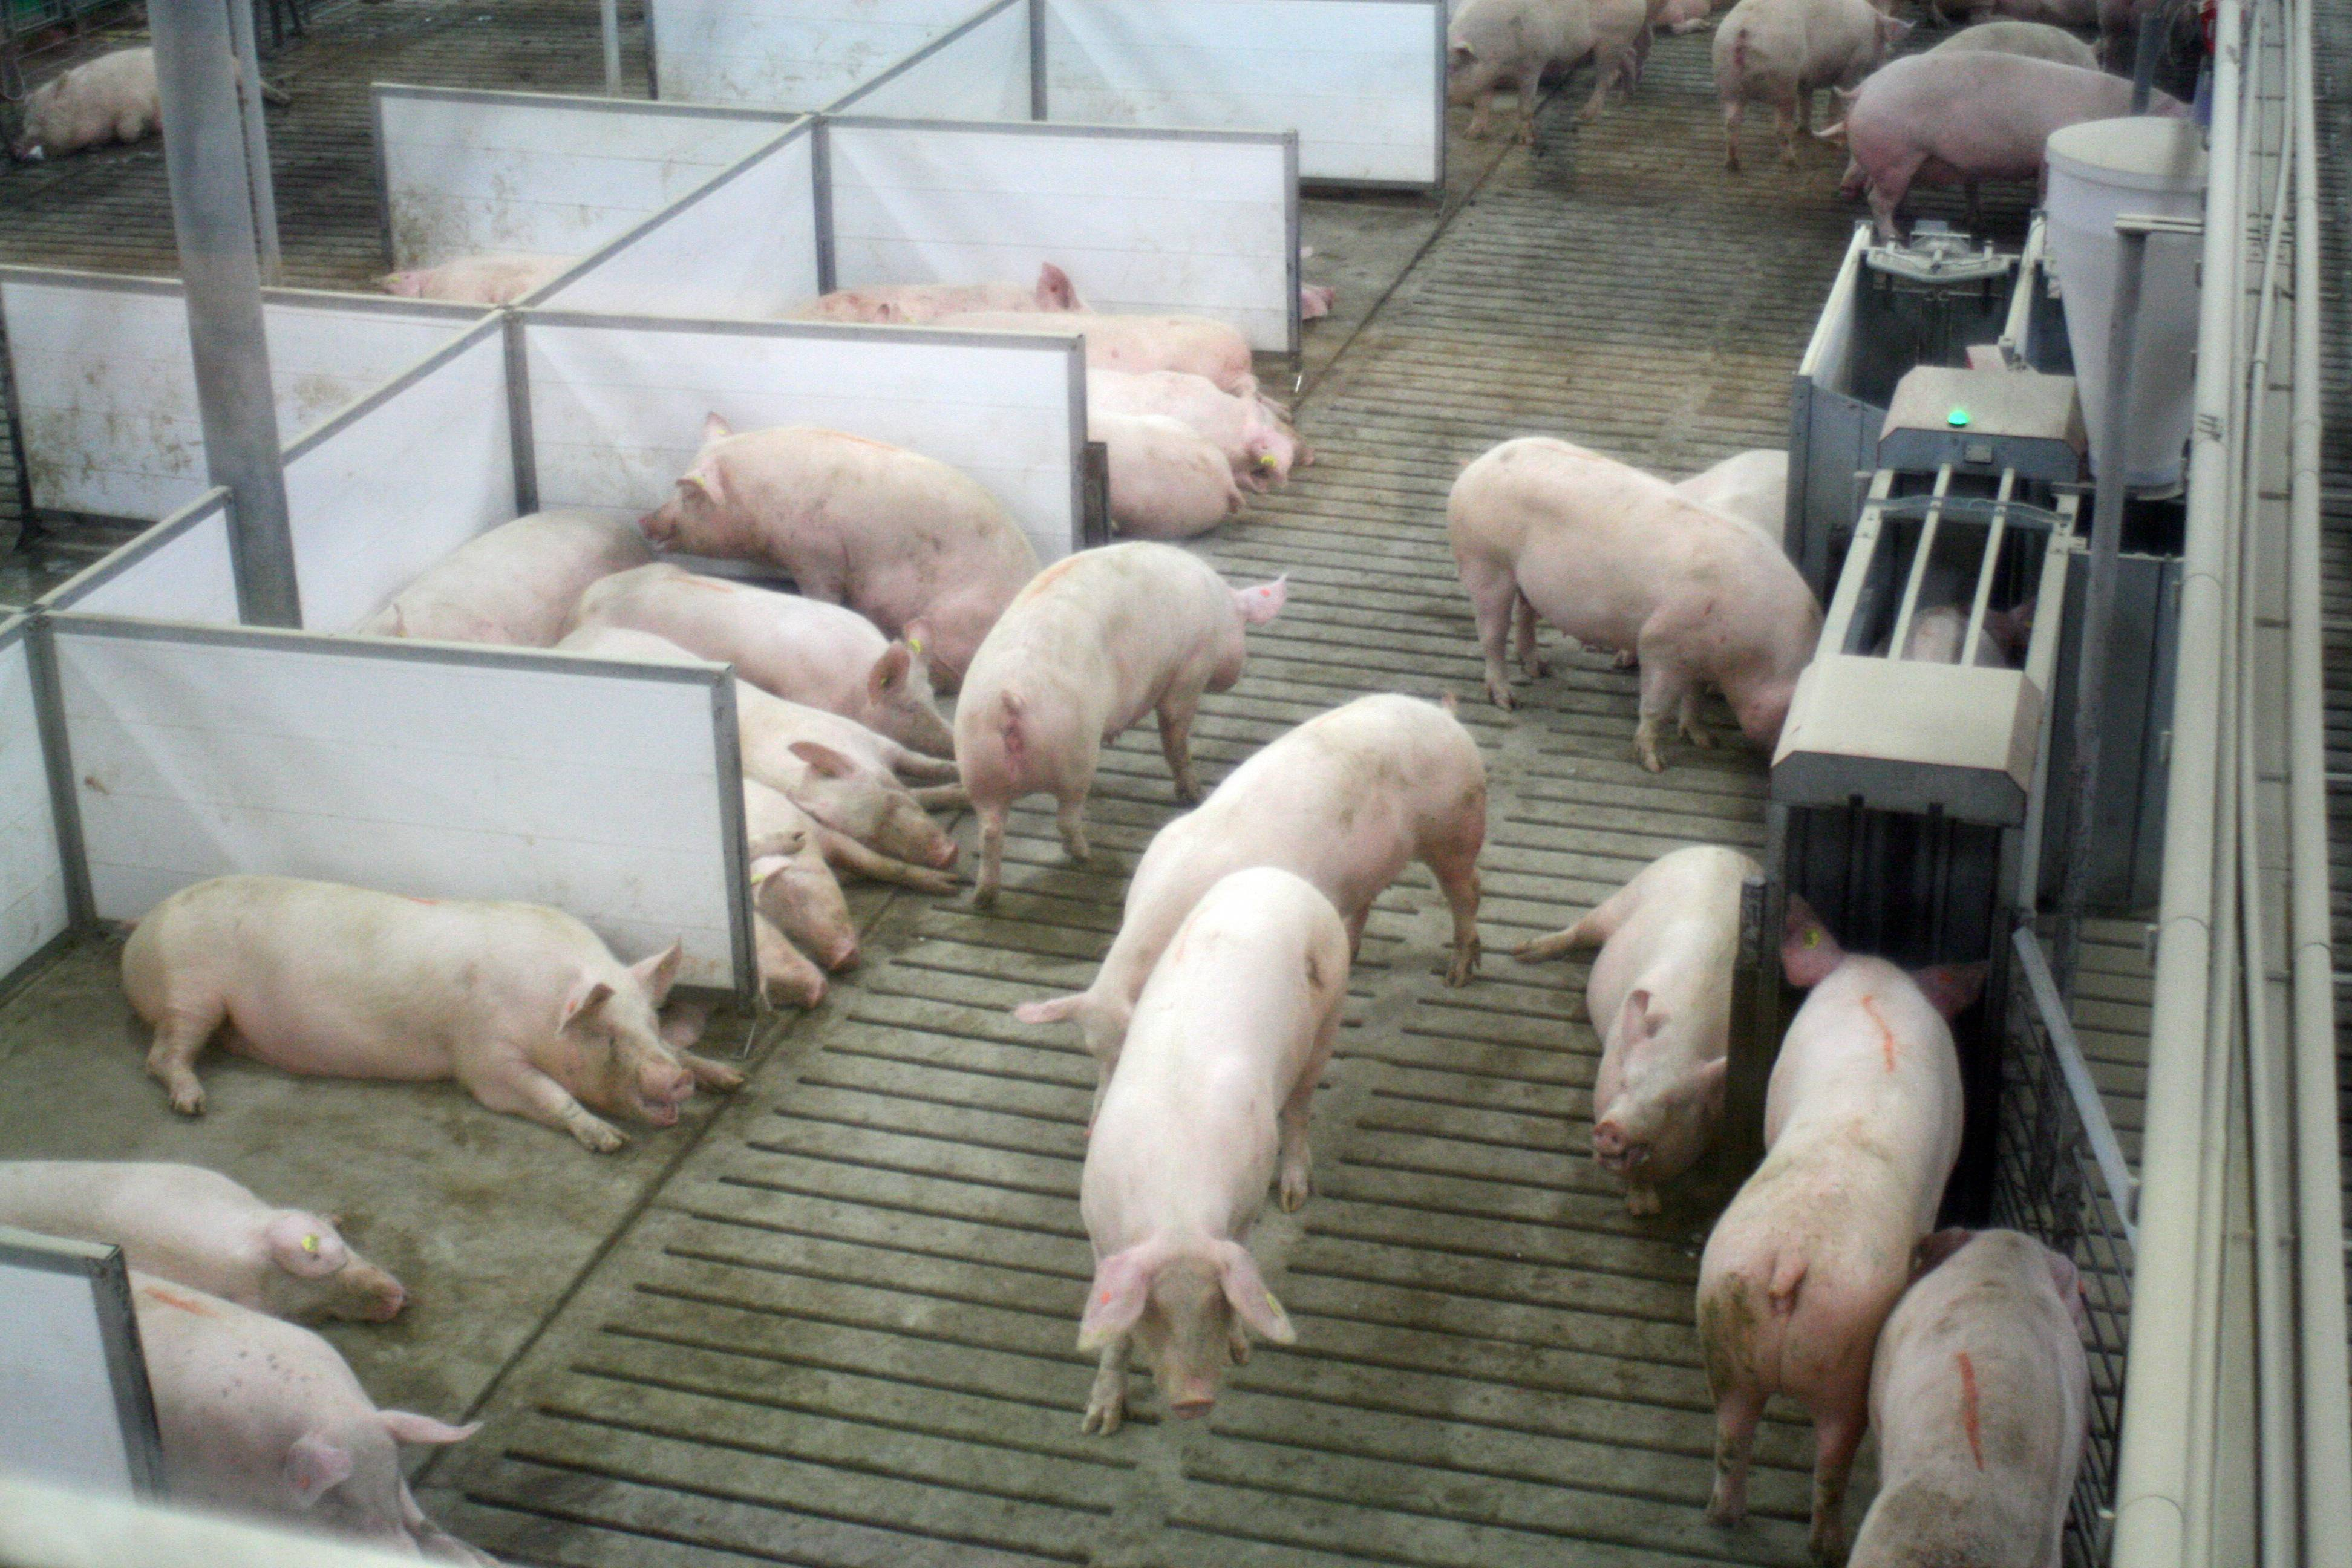 Pregnant sows use an electronic feeding stall at Fair Oaks Farms in Fair Oaks, Ind., which is 70 miles south of Chicago. The collection of properties known as Fair Oaks Farms draws as many as 500,000 visitors per year.